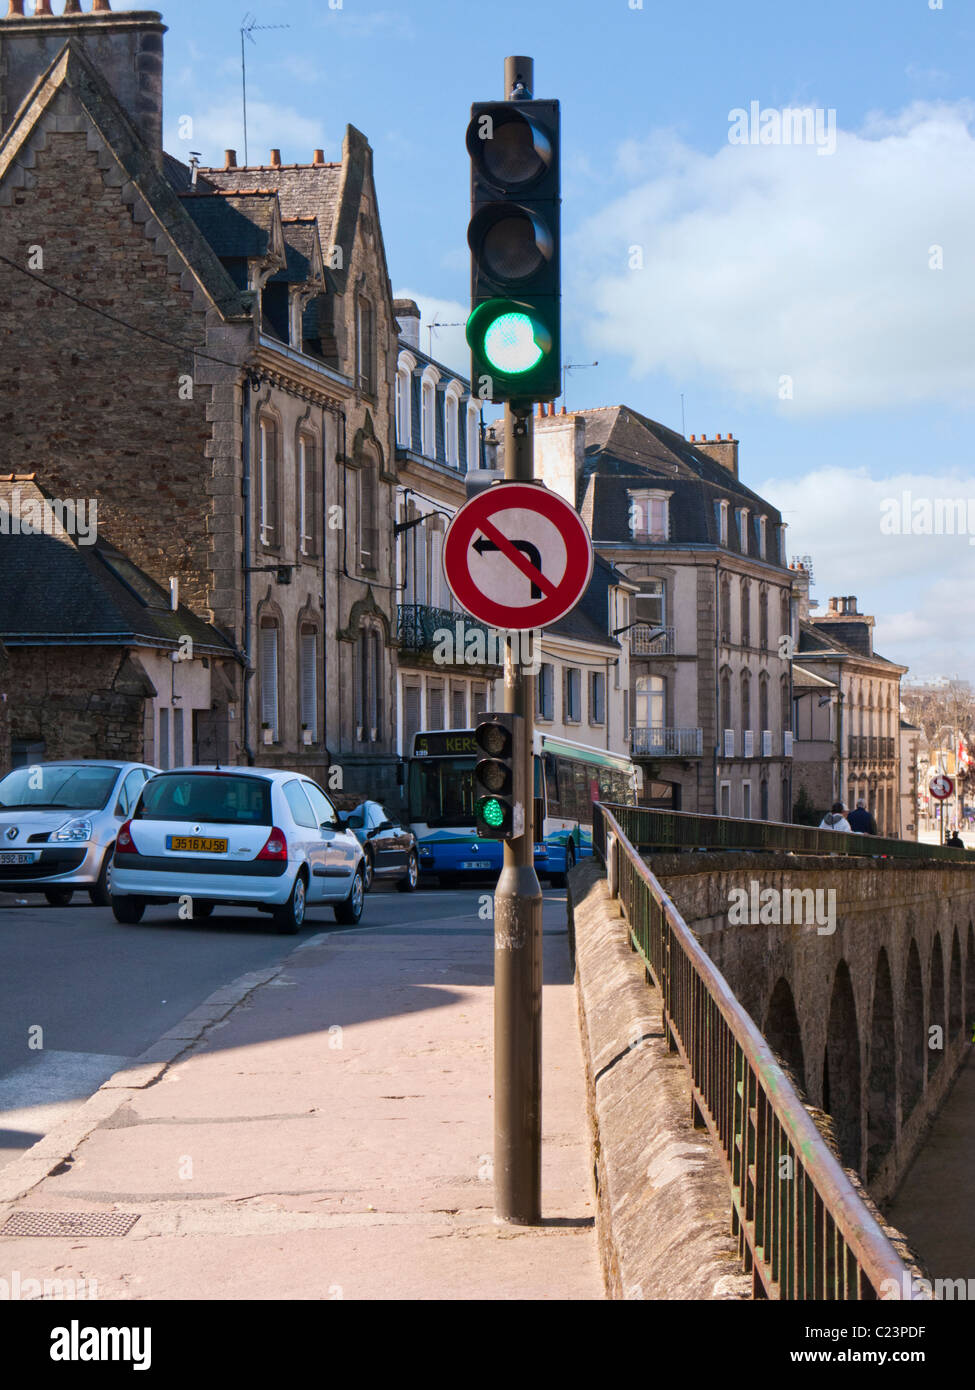 Traffic light signals on green France Europe - Stock Image